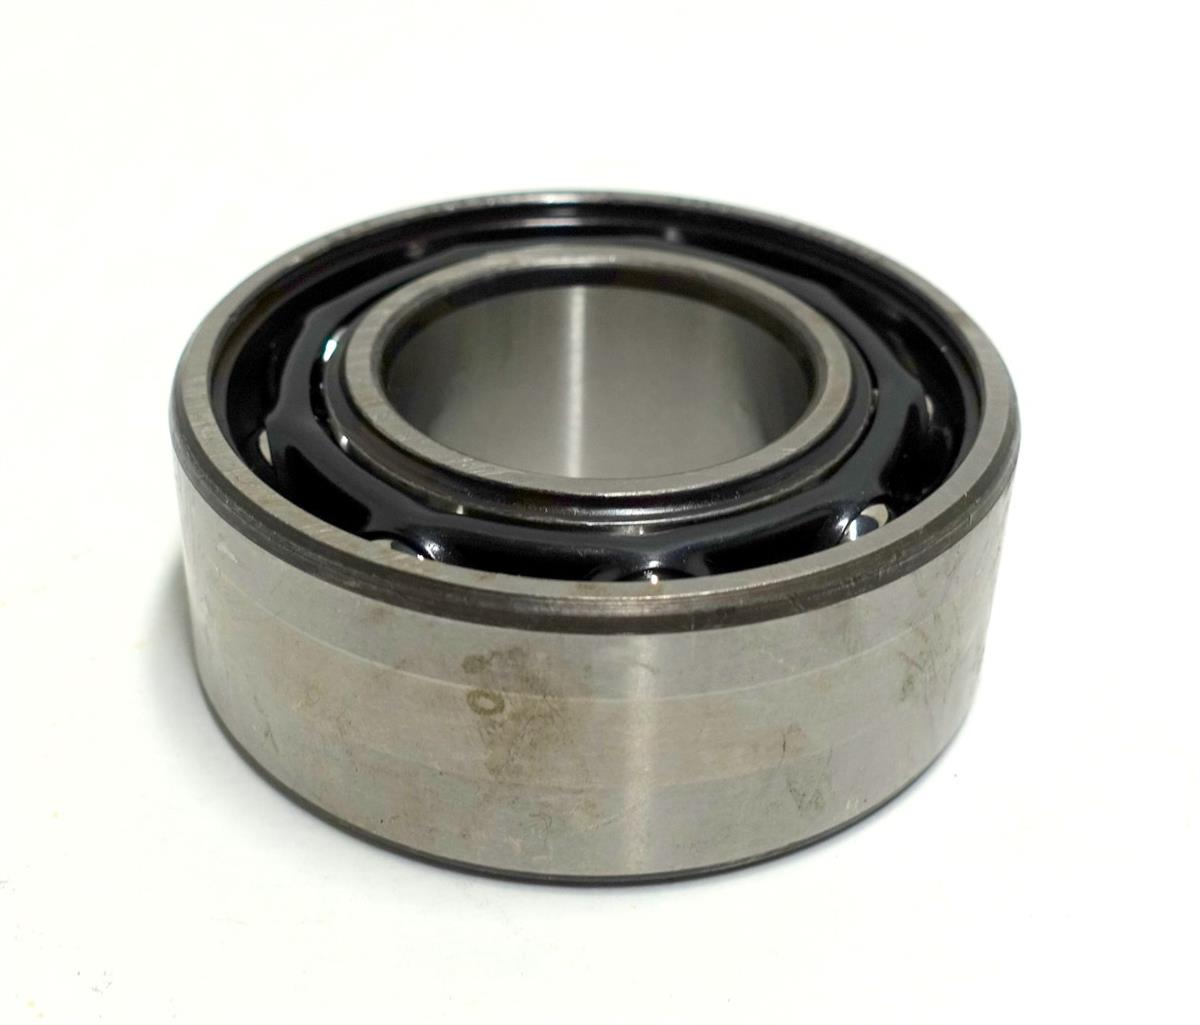 5T-971 | 3110-01-067-1432 Wrecker Drive Bearing for M816 5 Ton Wrecker Trucks NOS (4).JPG